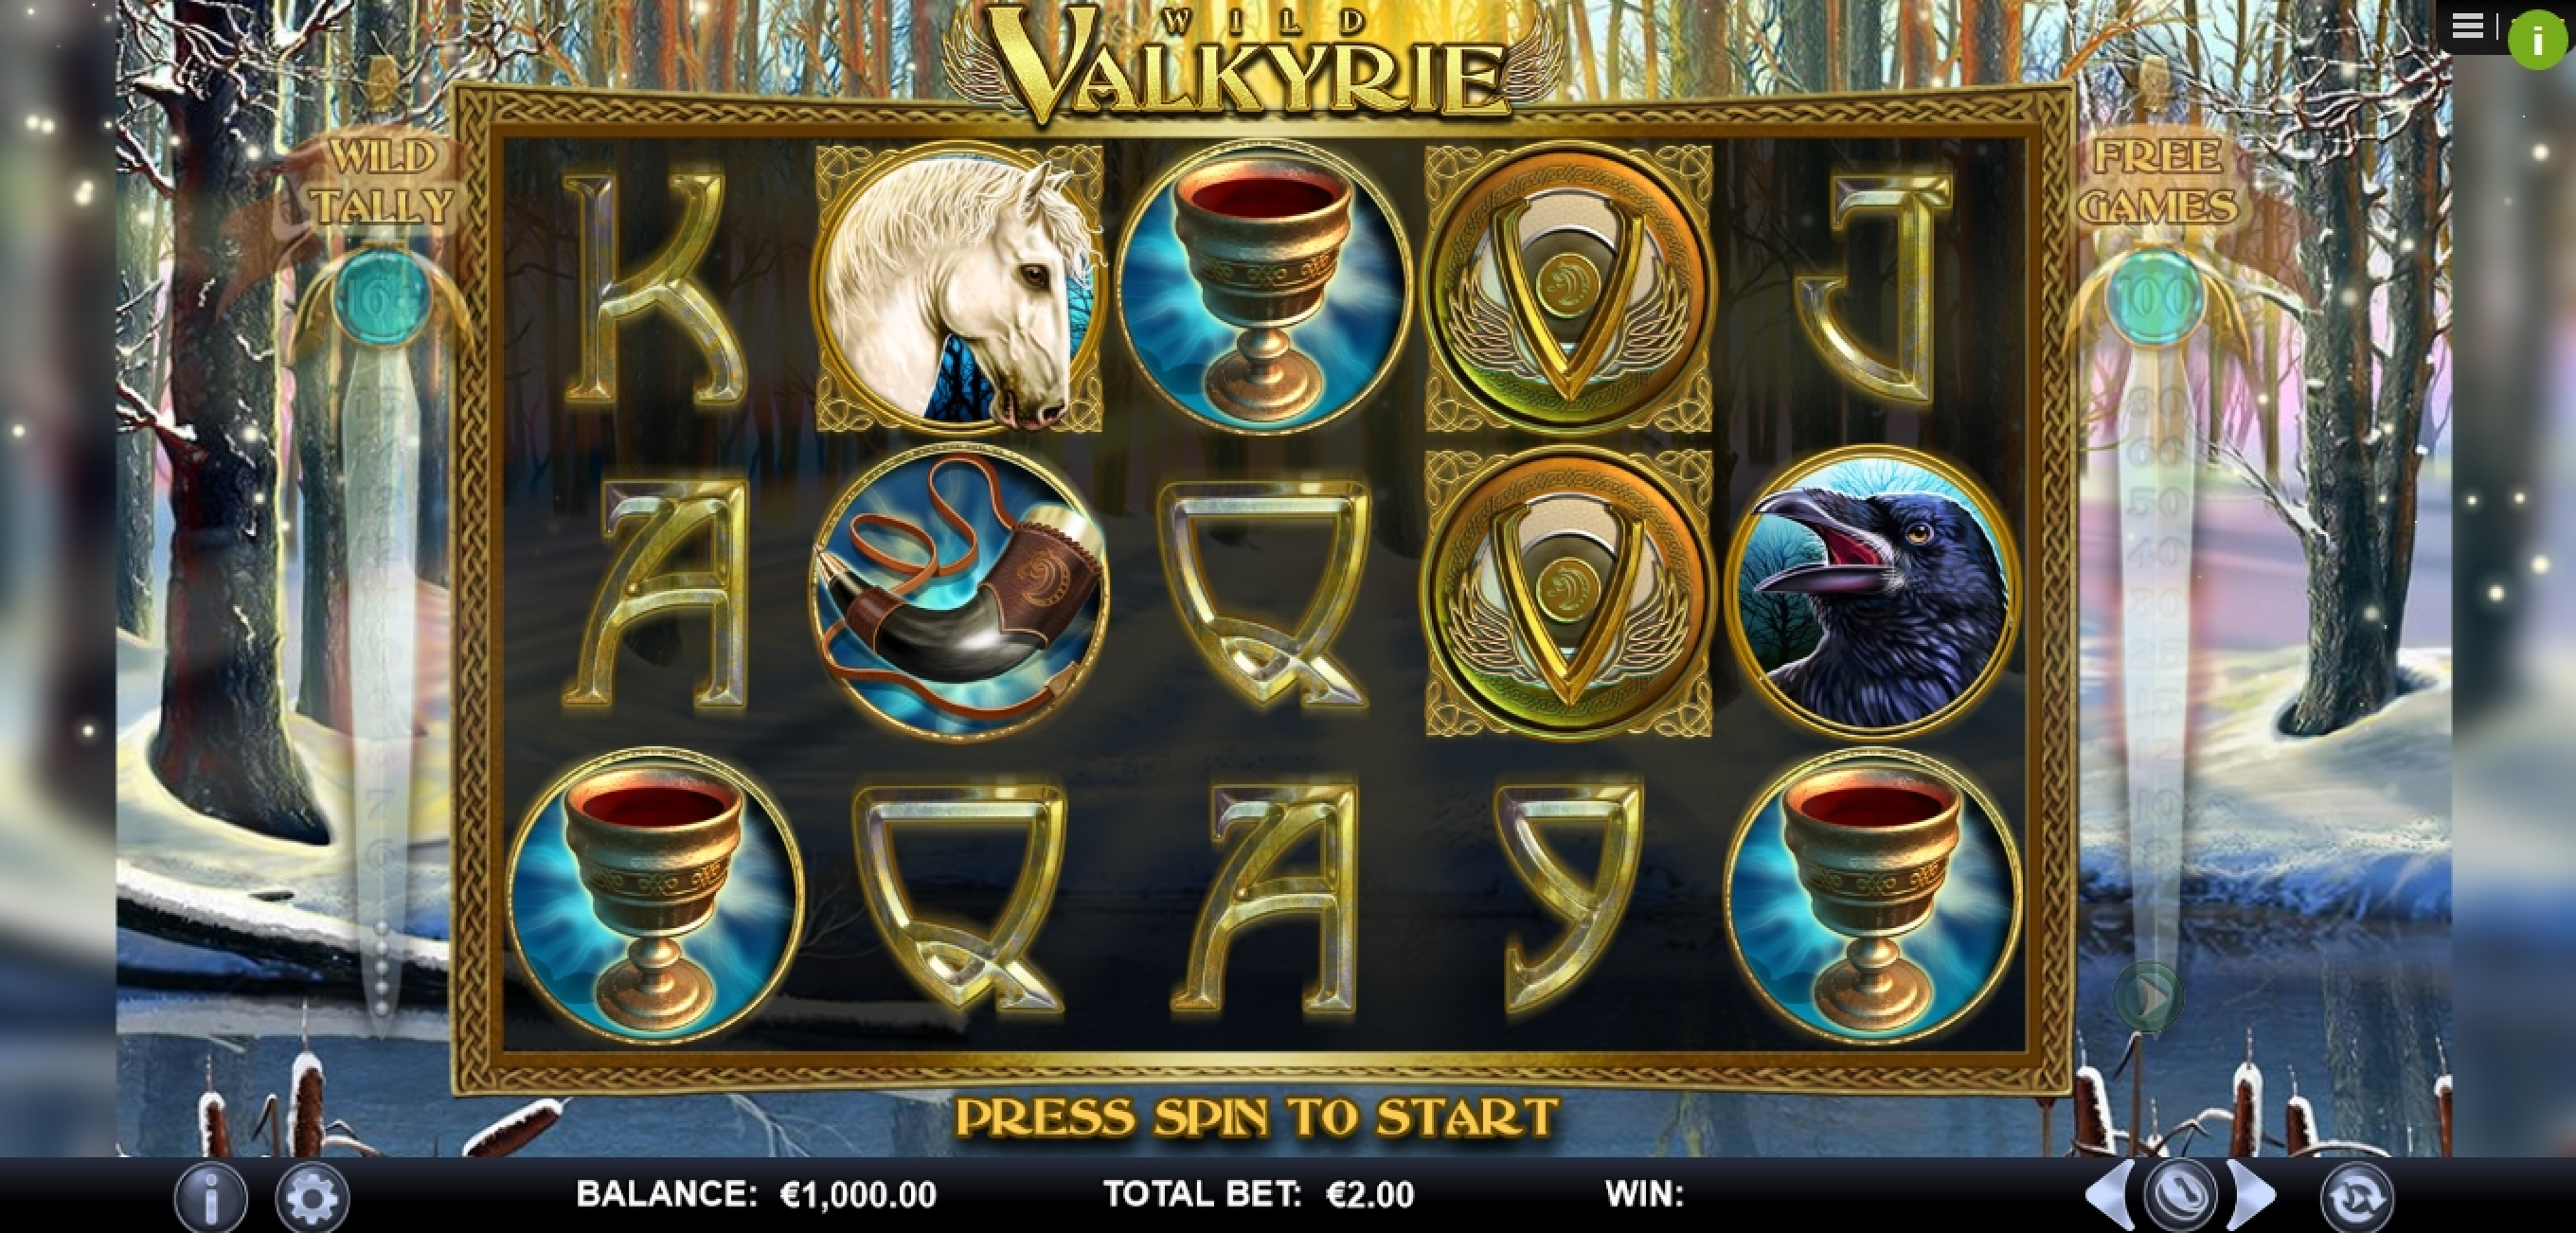 Reels in Wild Valkyrie Slot Game by Games Lab